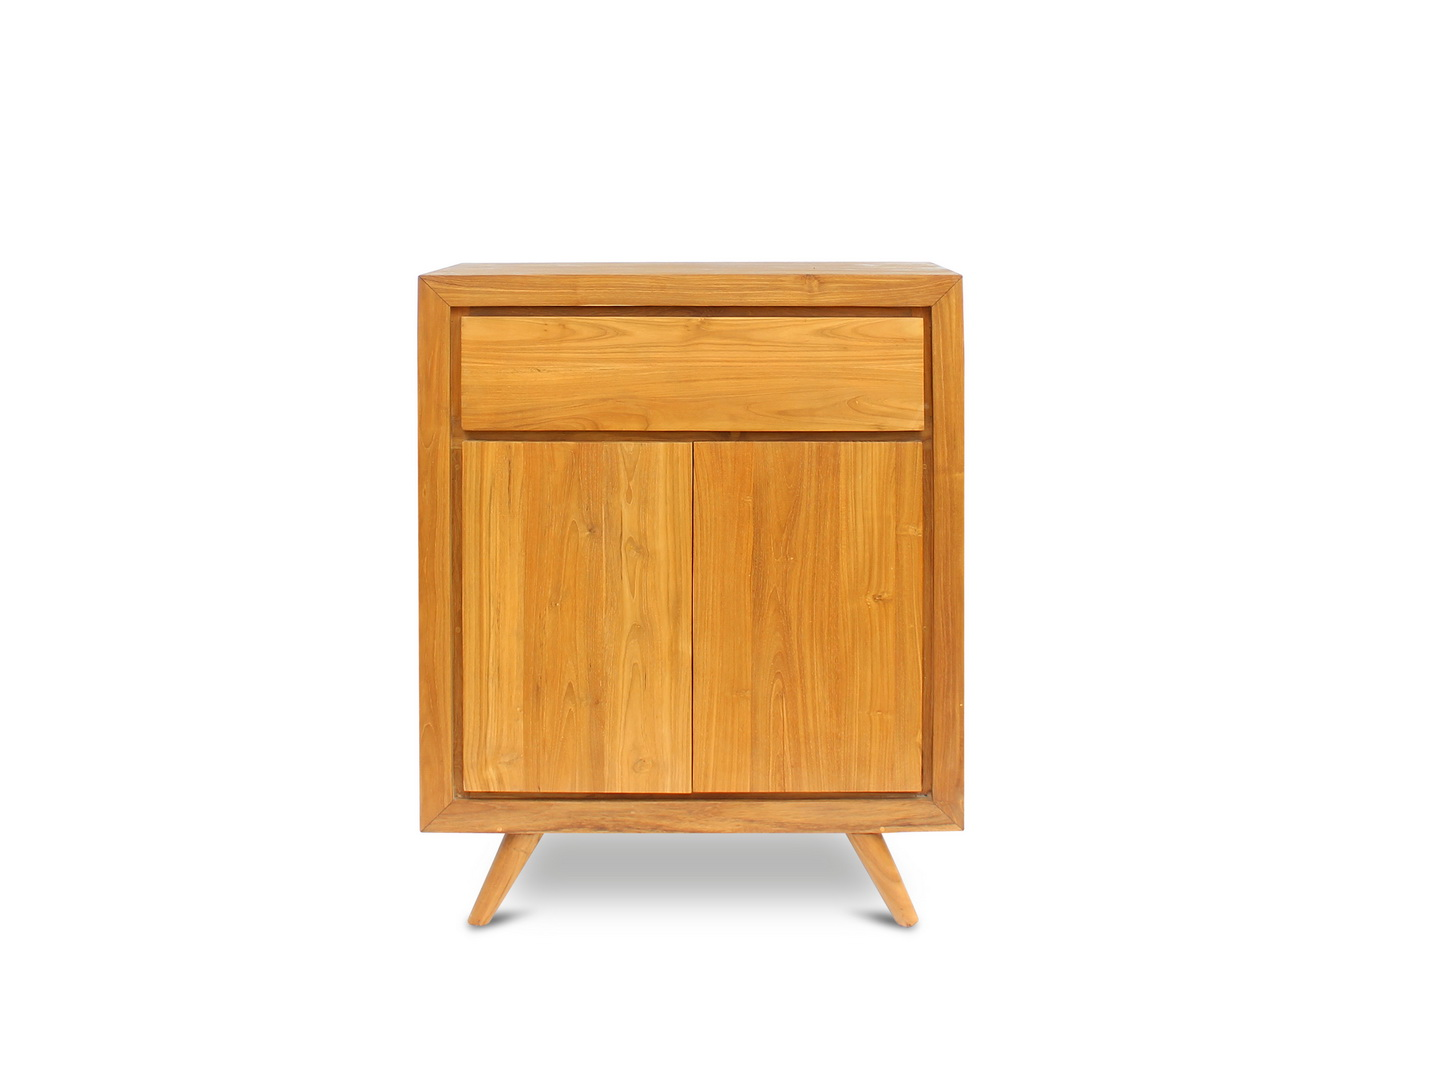 Montgomery_cabinet_1drawer_2doors_02_yuni_bali_furniture_manufactuerer_exporter_jepara_teakwood_indonesia_shopping_showroom